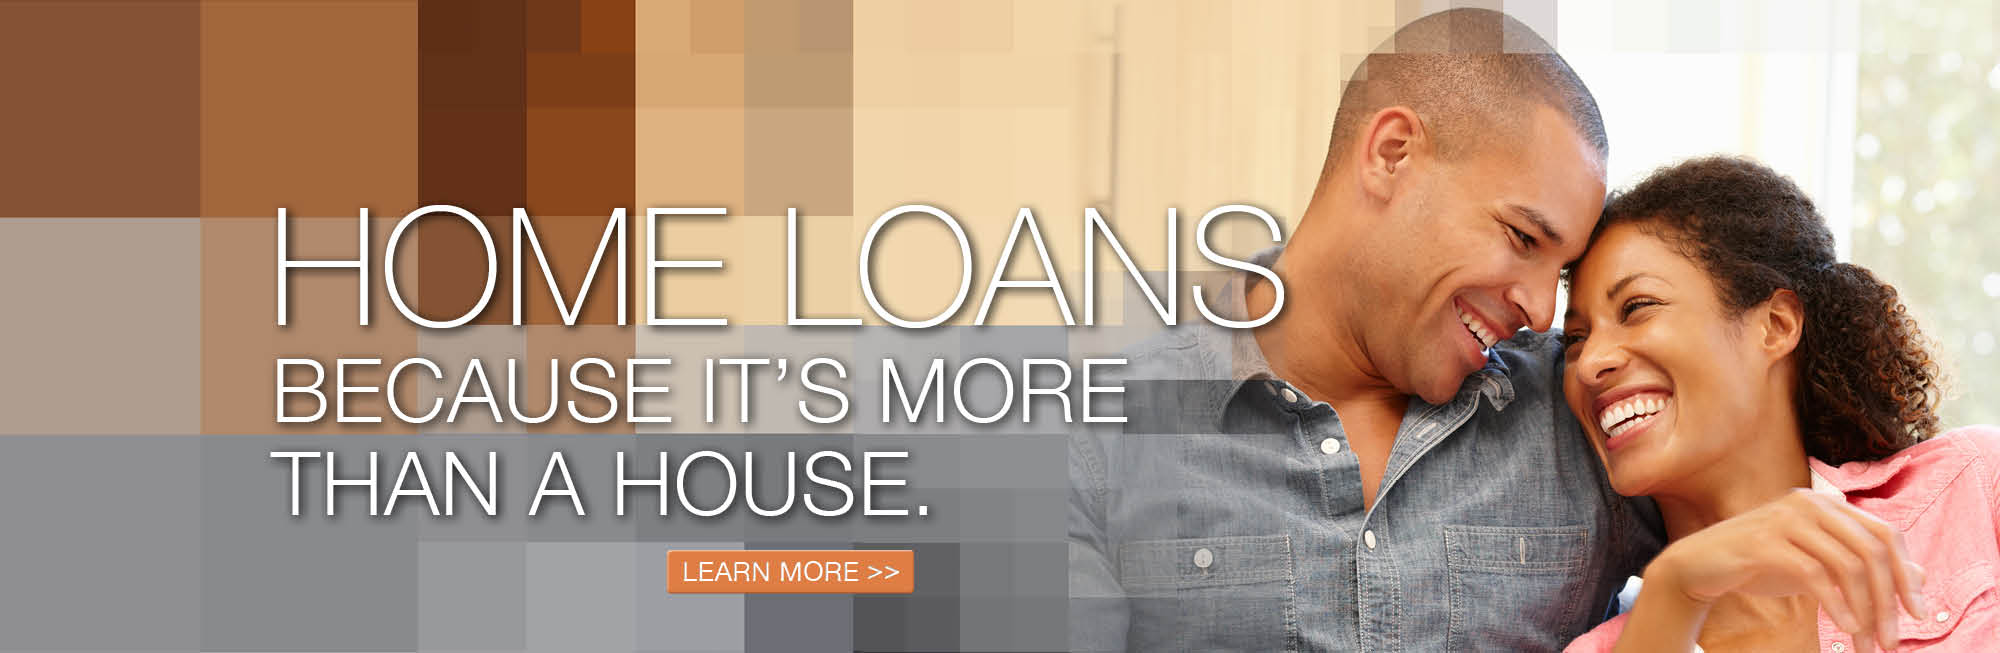 home loans because it's more than a house